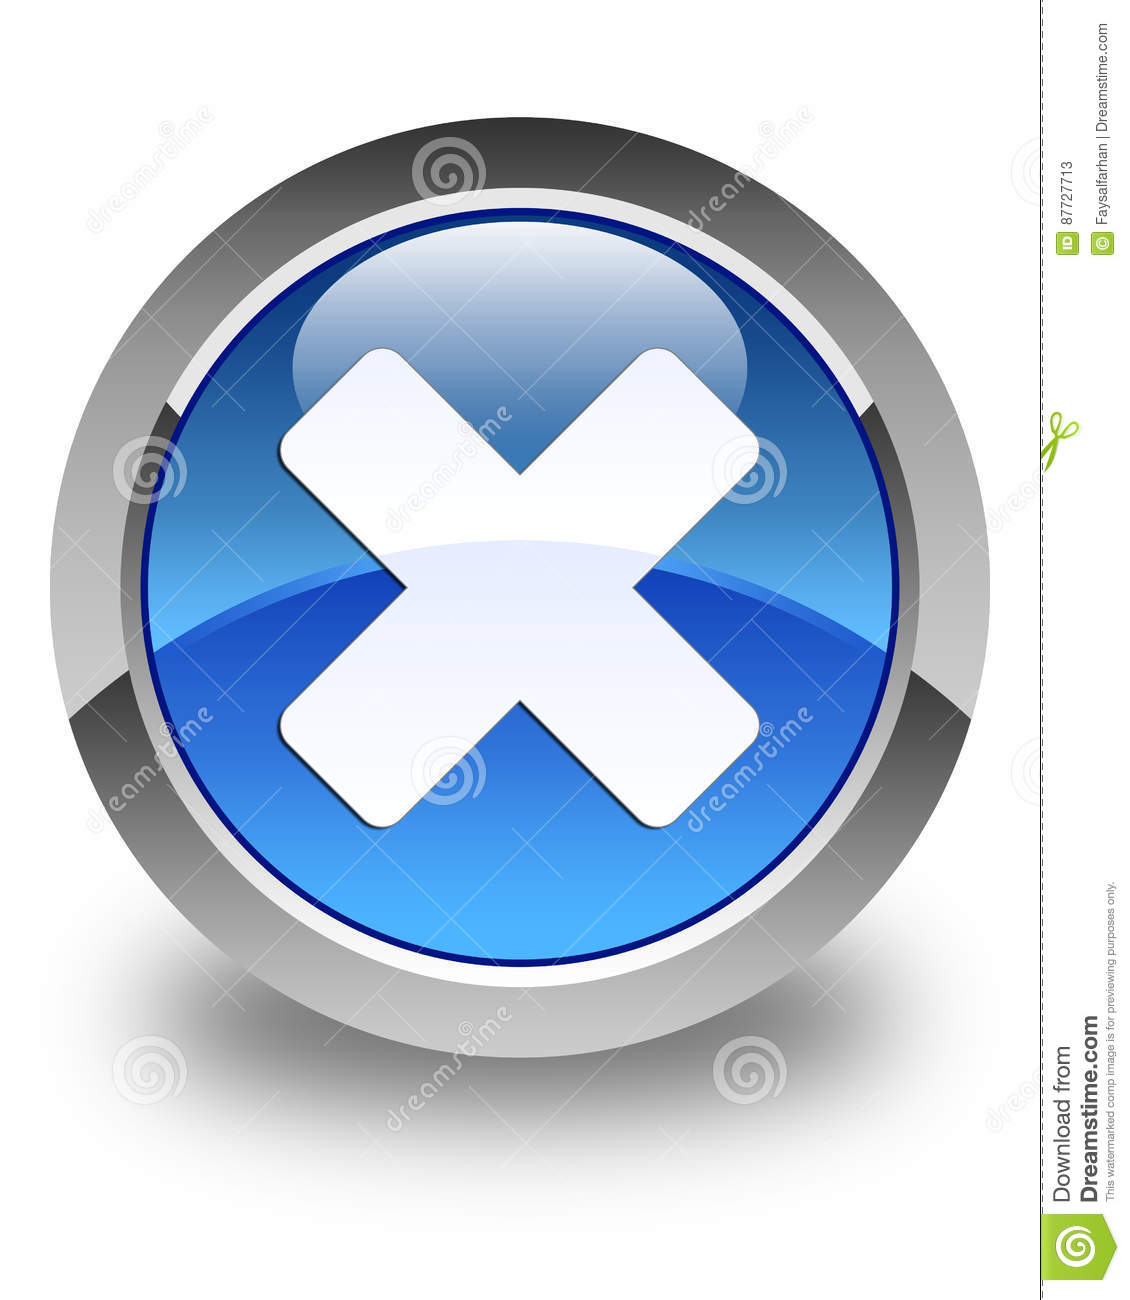 Cancel Icon Glossy Blue Round Button Stock Illustration ...